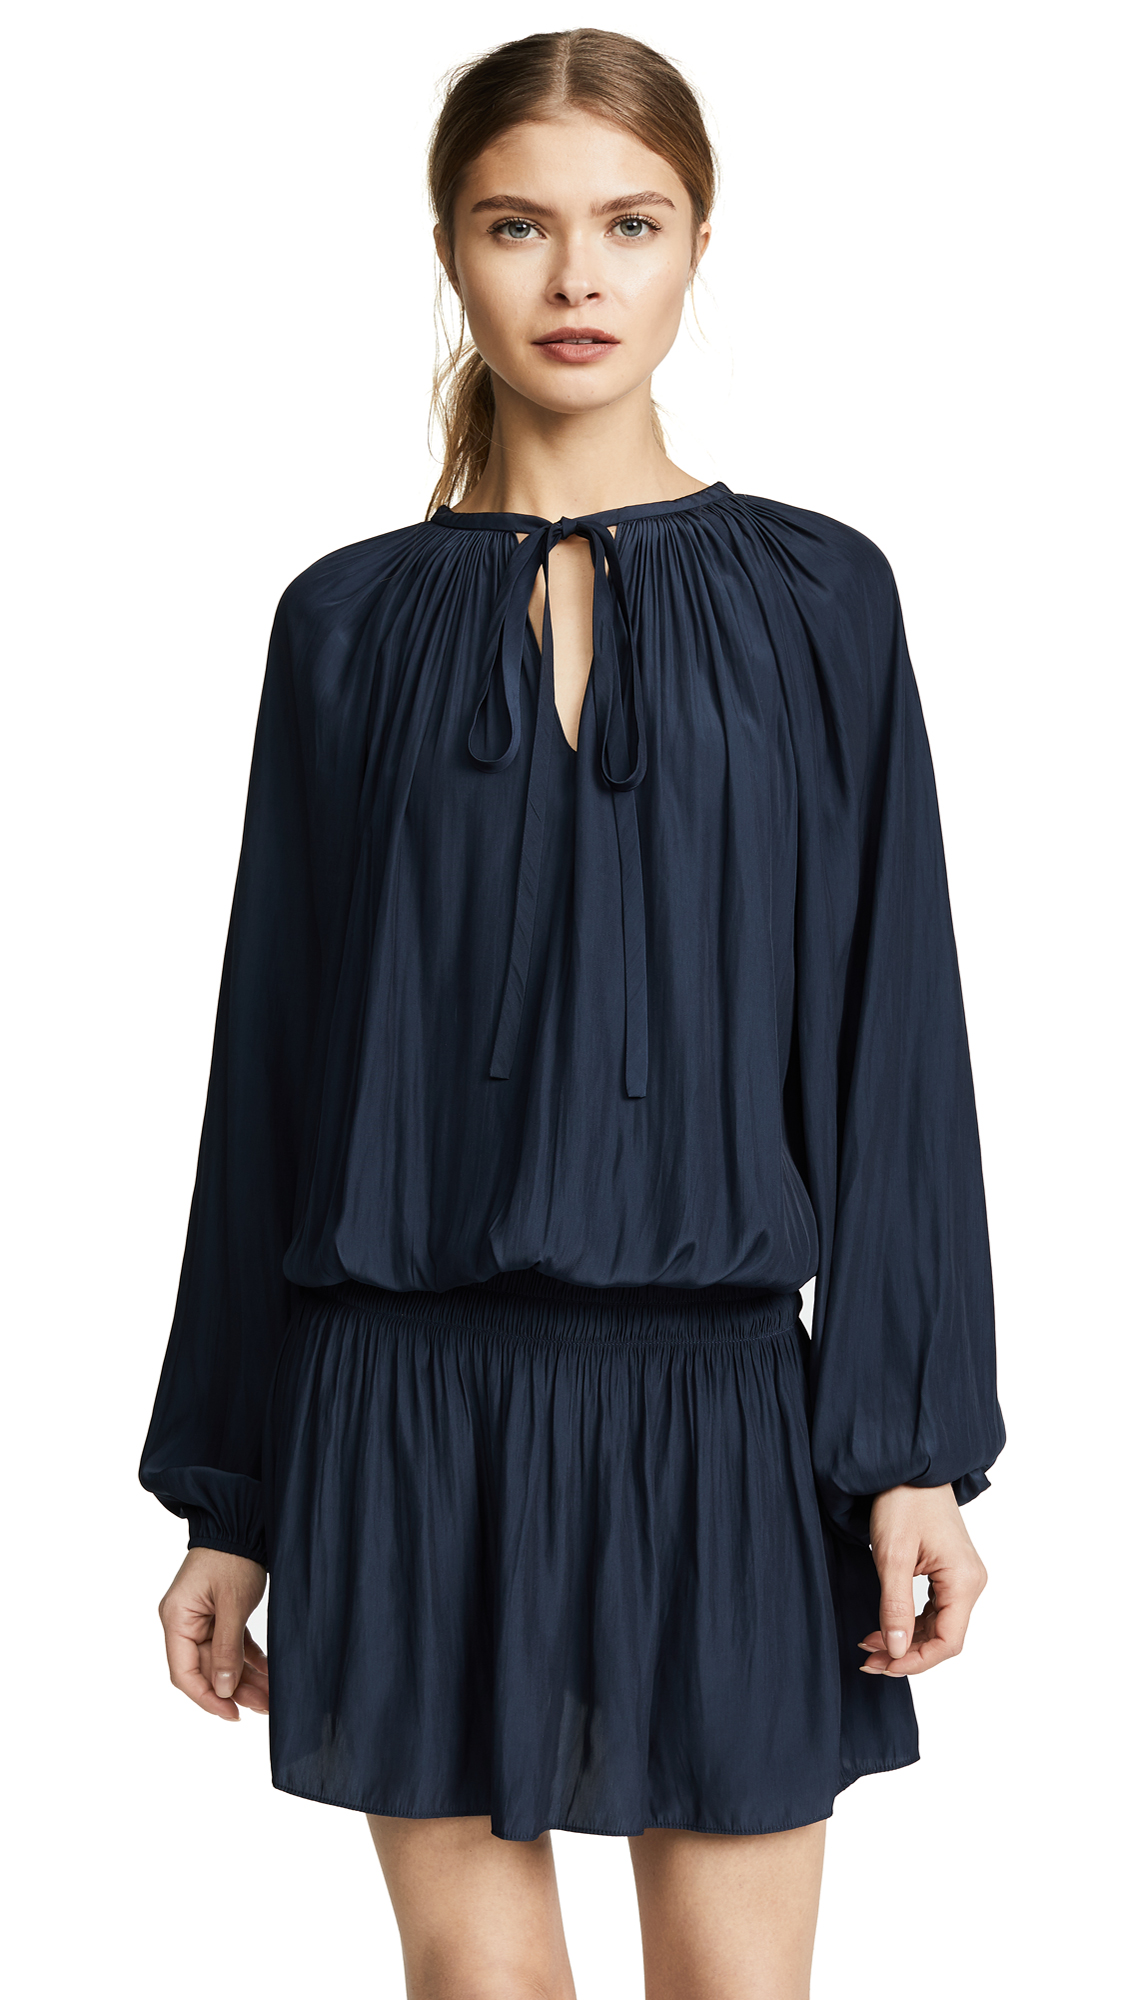 Ramy Brook Paris Dress - Navy